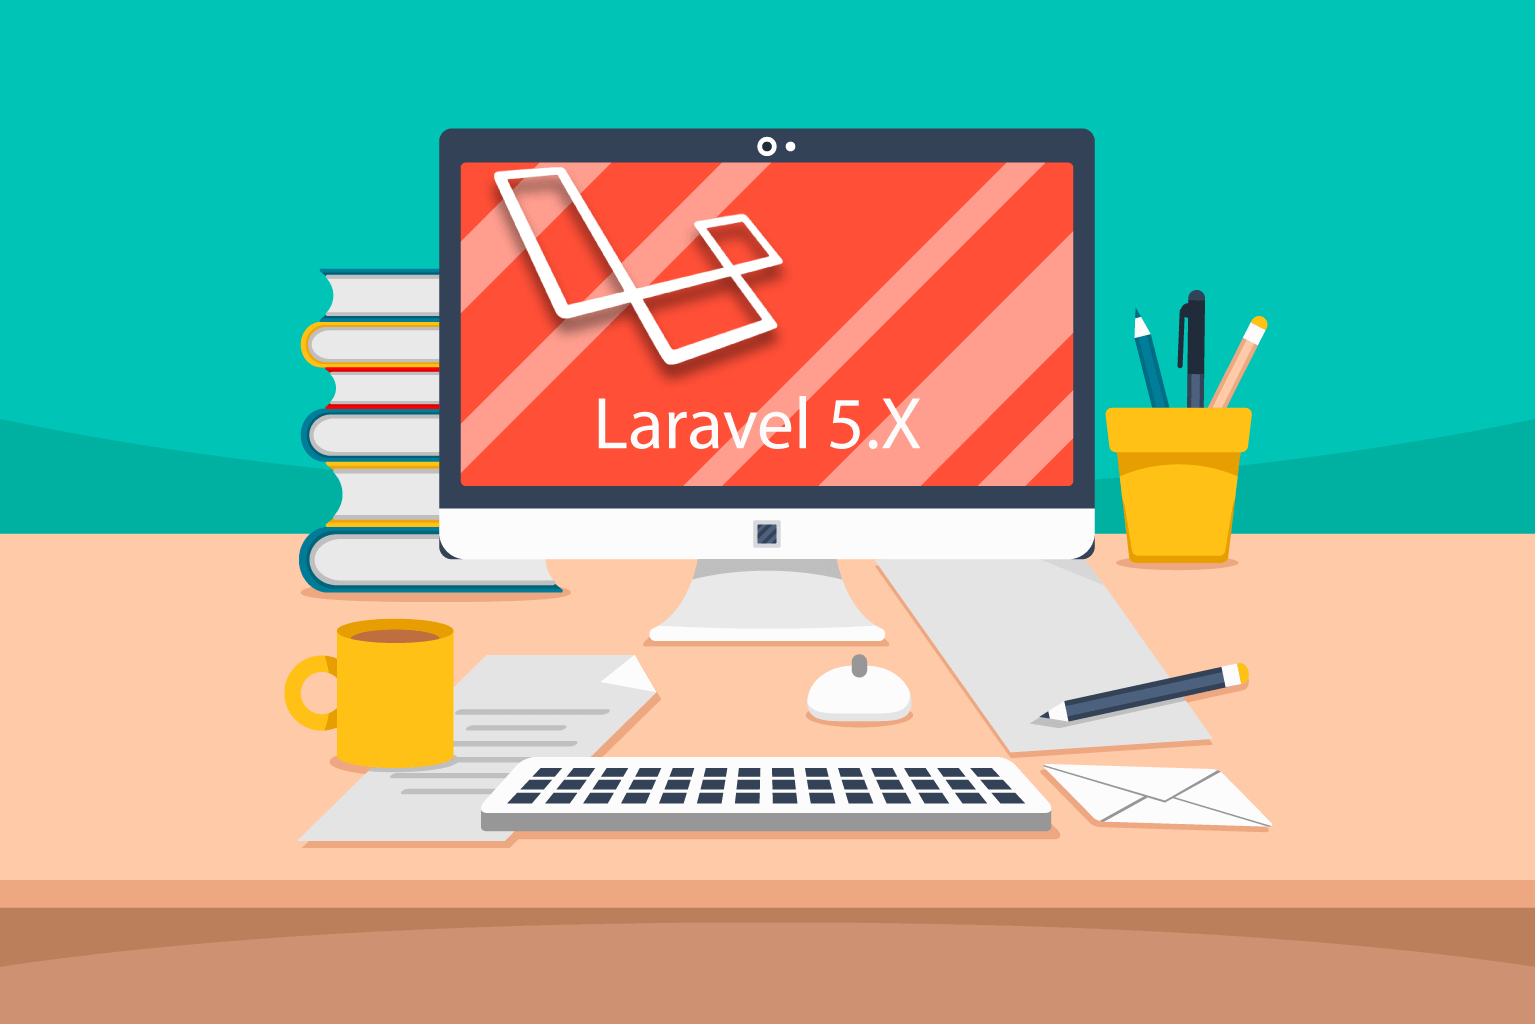 Step by step Laravel guide from scratch with projects